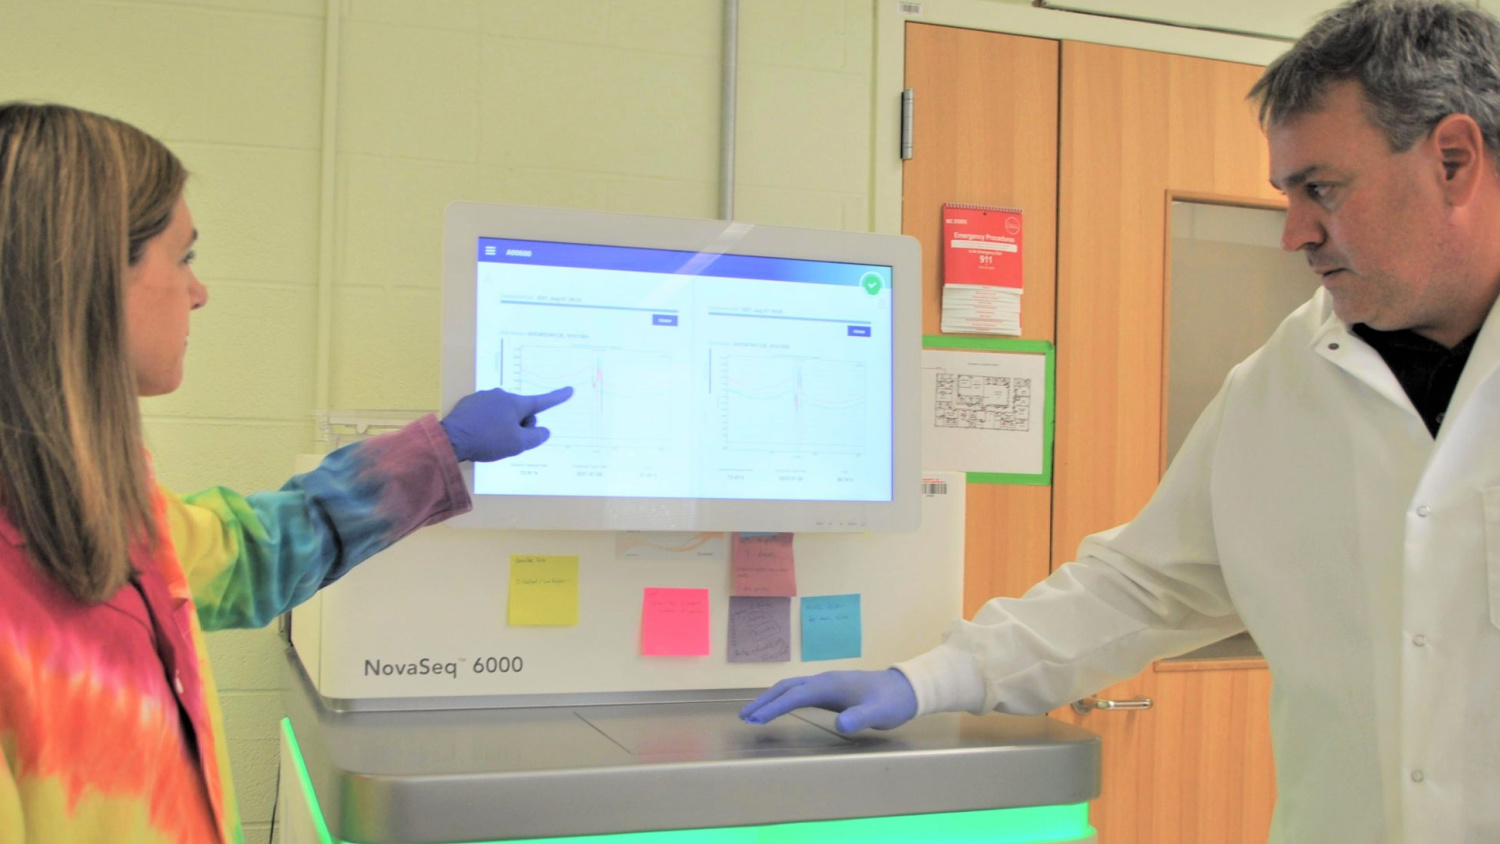 GSL Director David Baltzegar and GSL Research Specialist Kelly Sides work with the Illumina NovaSeq 6000, currently the most powerful next-generation DNA sequencer.